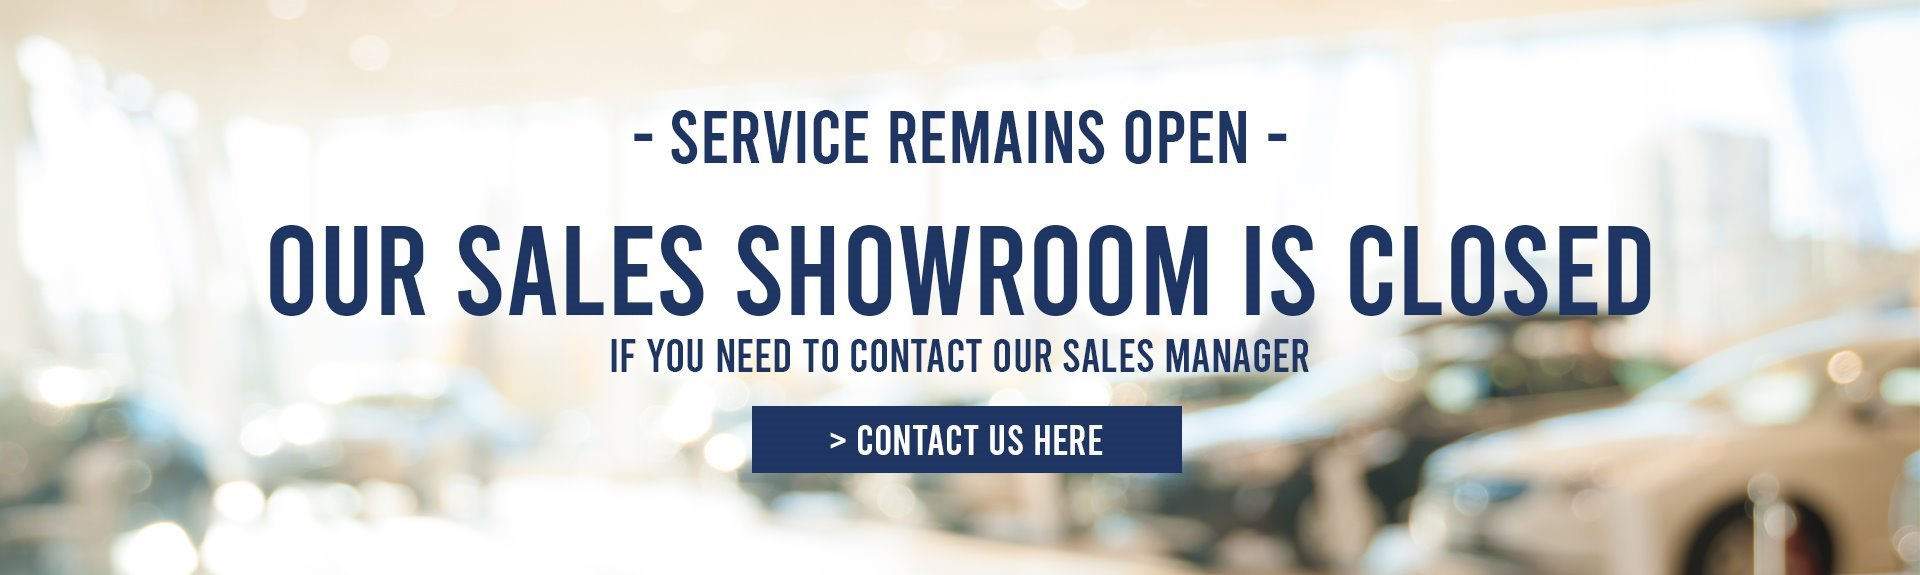 Our sales showroom is closed